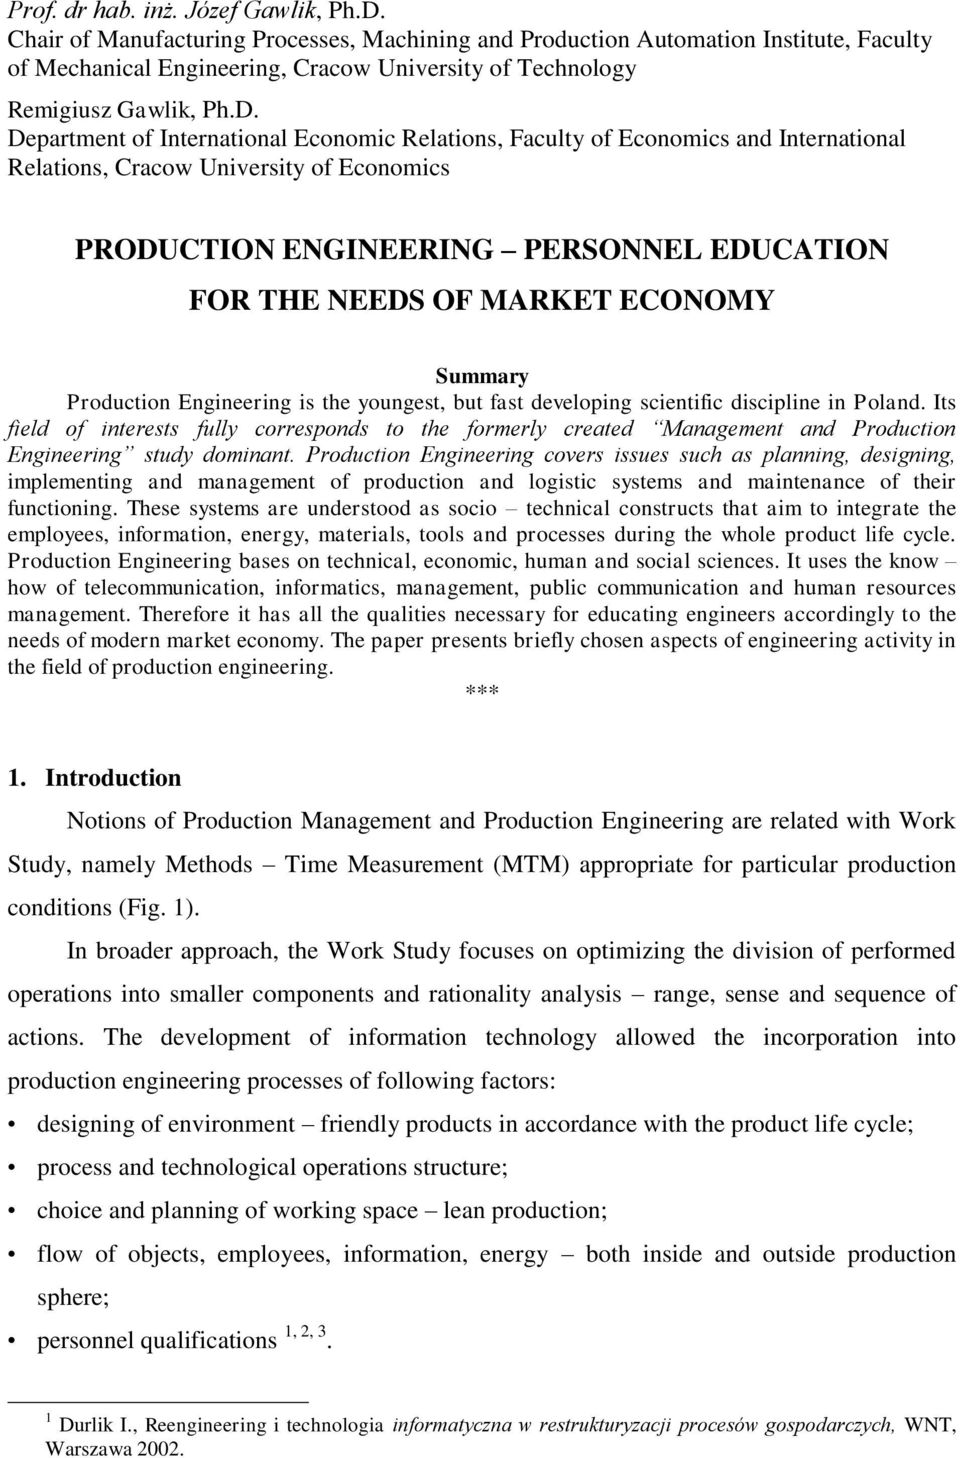 Department of International Economic Relations, Faculty of Economics and International Relations, Cracow University of Economics PRODUCTION ENGINEERING PERSONNEL EDUCATION FOR THE NEEDS OF MARKET